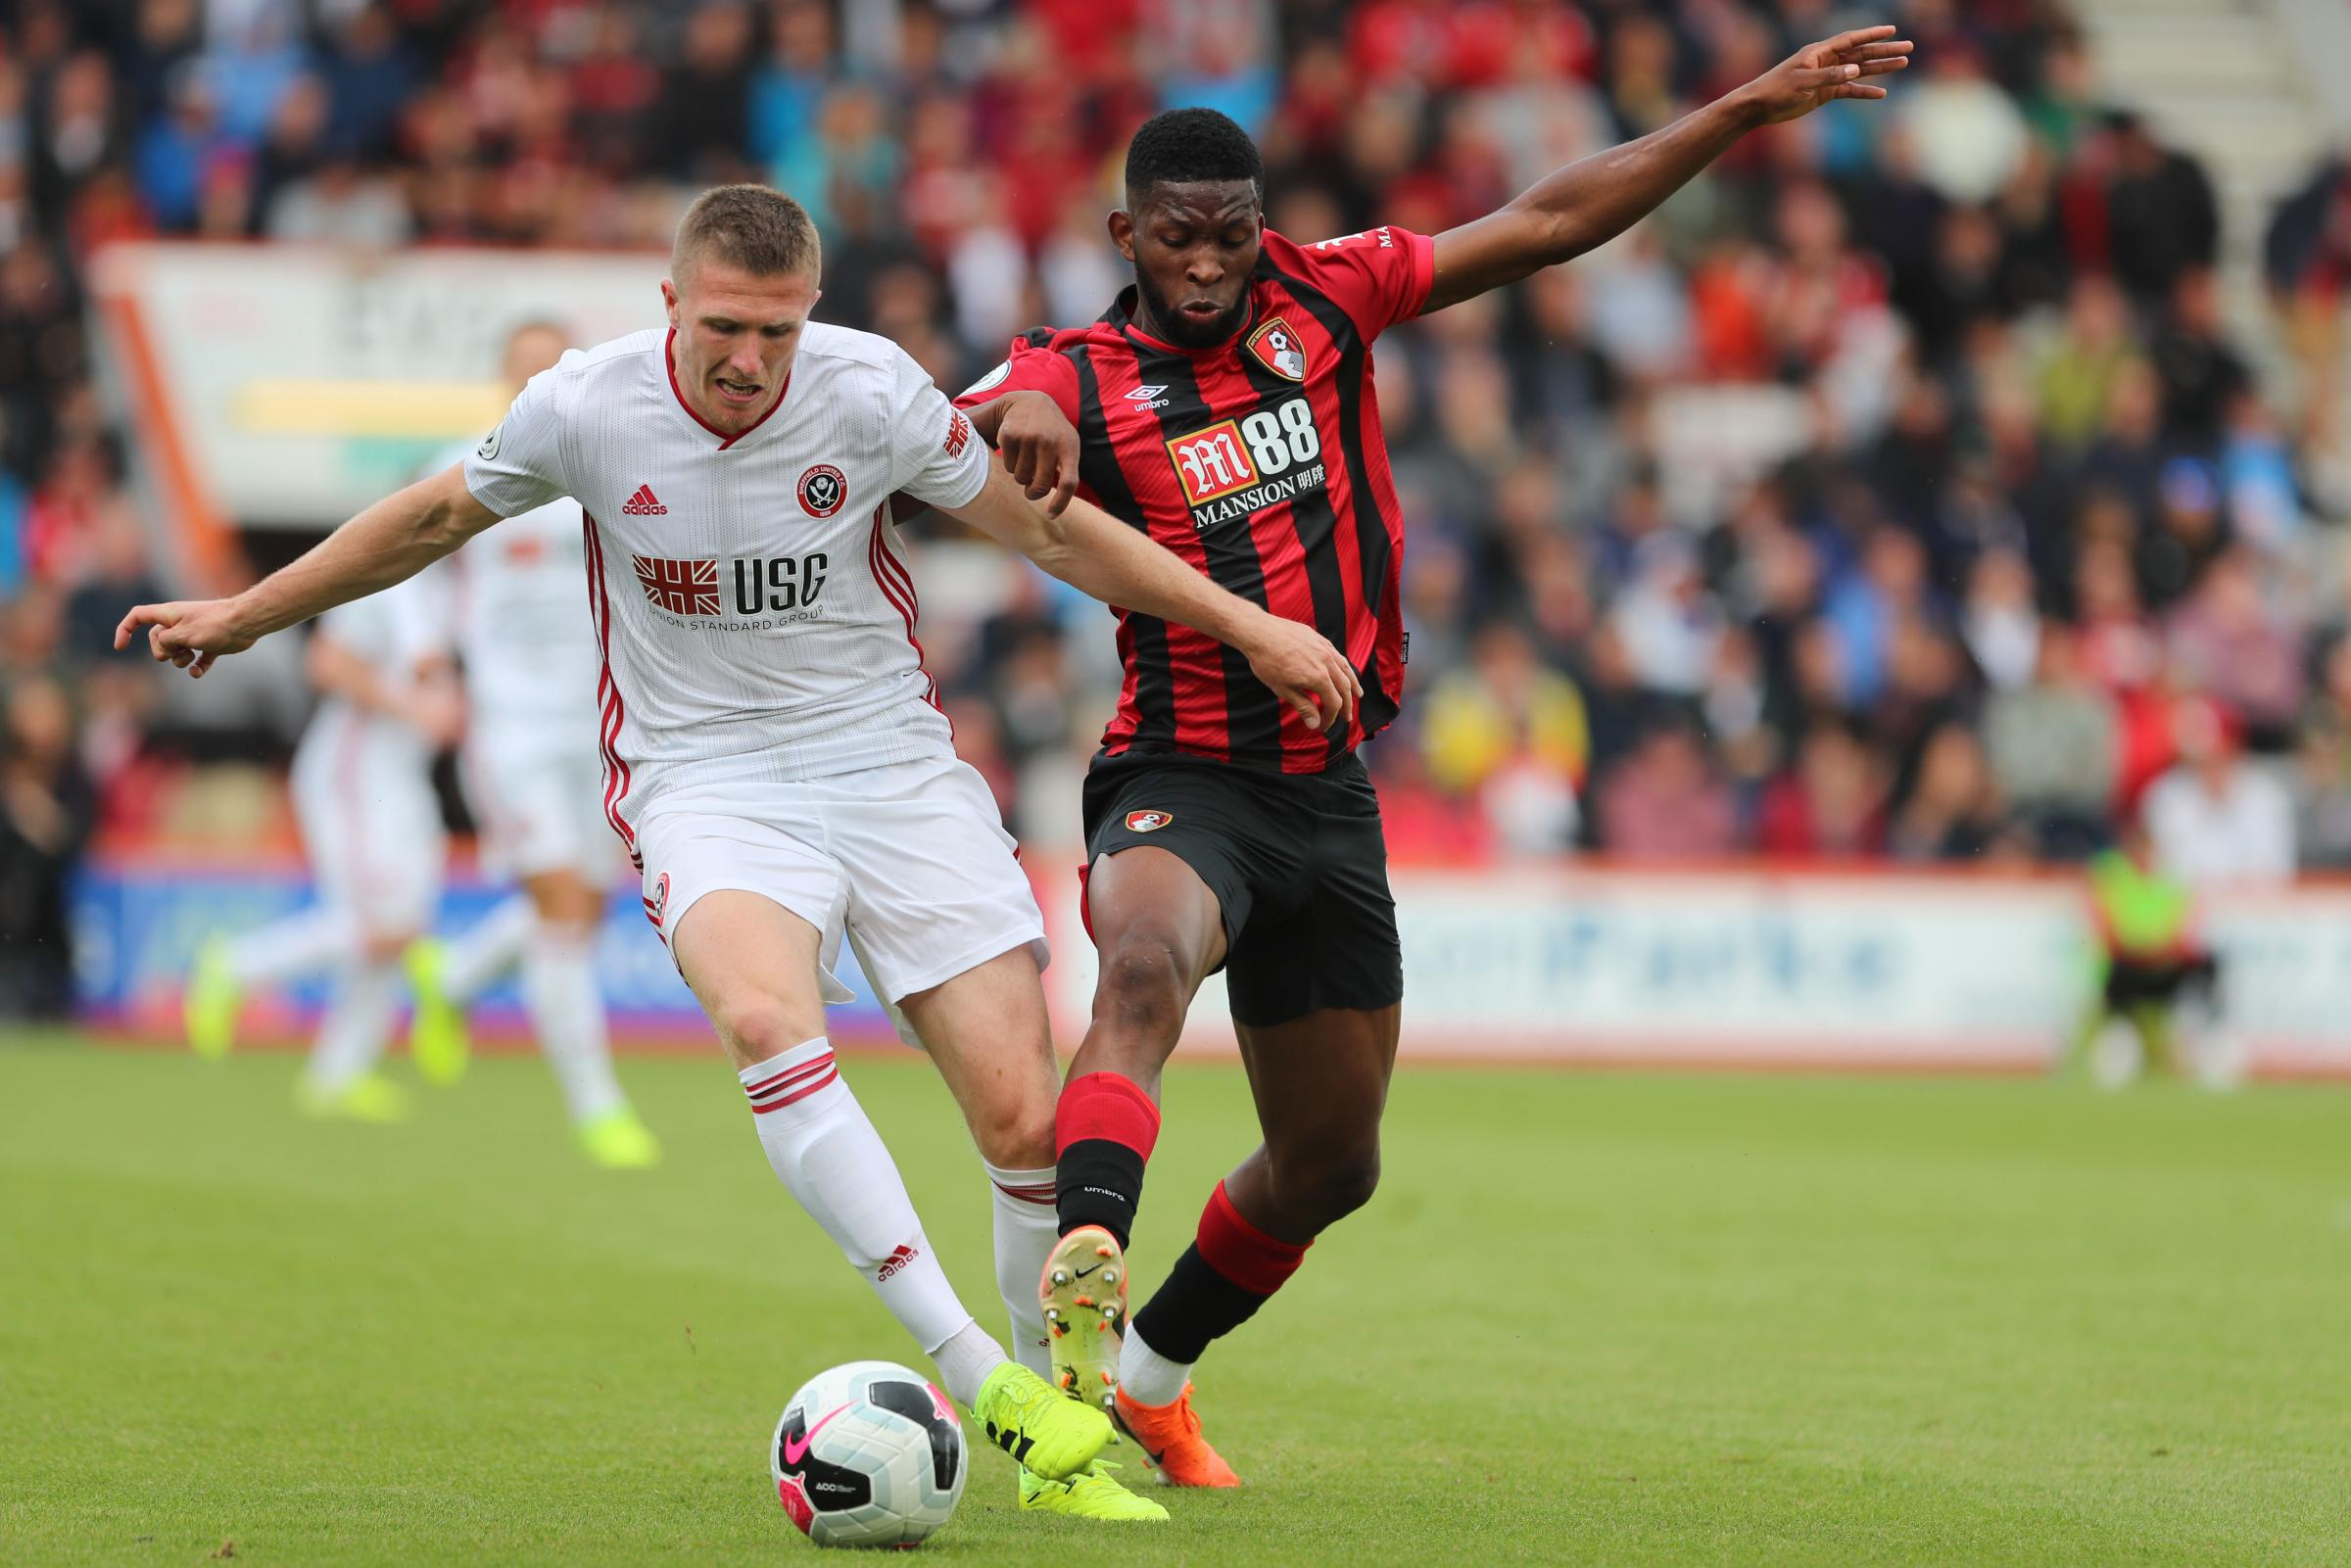 Eddie Howe insists AFC Bournemouth can remain 'very competent defensively' despite absence of suspended Jefferson Lerma